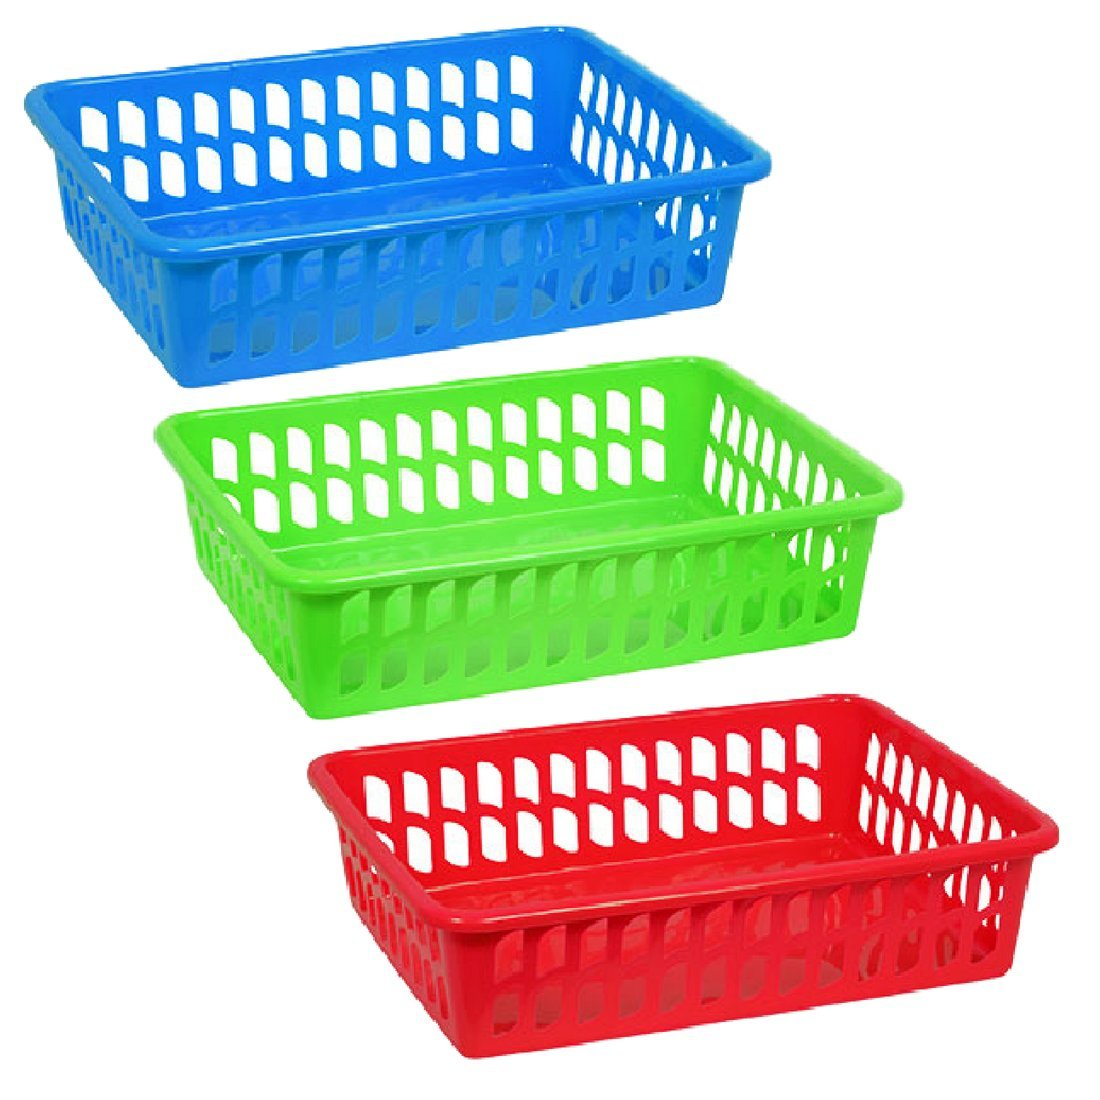 Shallow Plastic Baskets Letter Trays Set of 3 Colors Red Blue Green School, Office, Classroom, College Dorm, Day Care 15.625x11.875x4-in